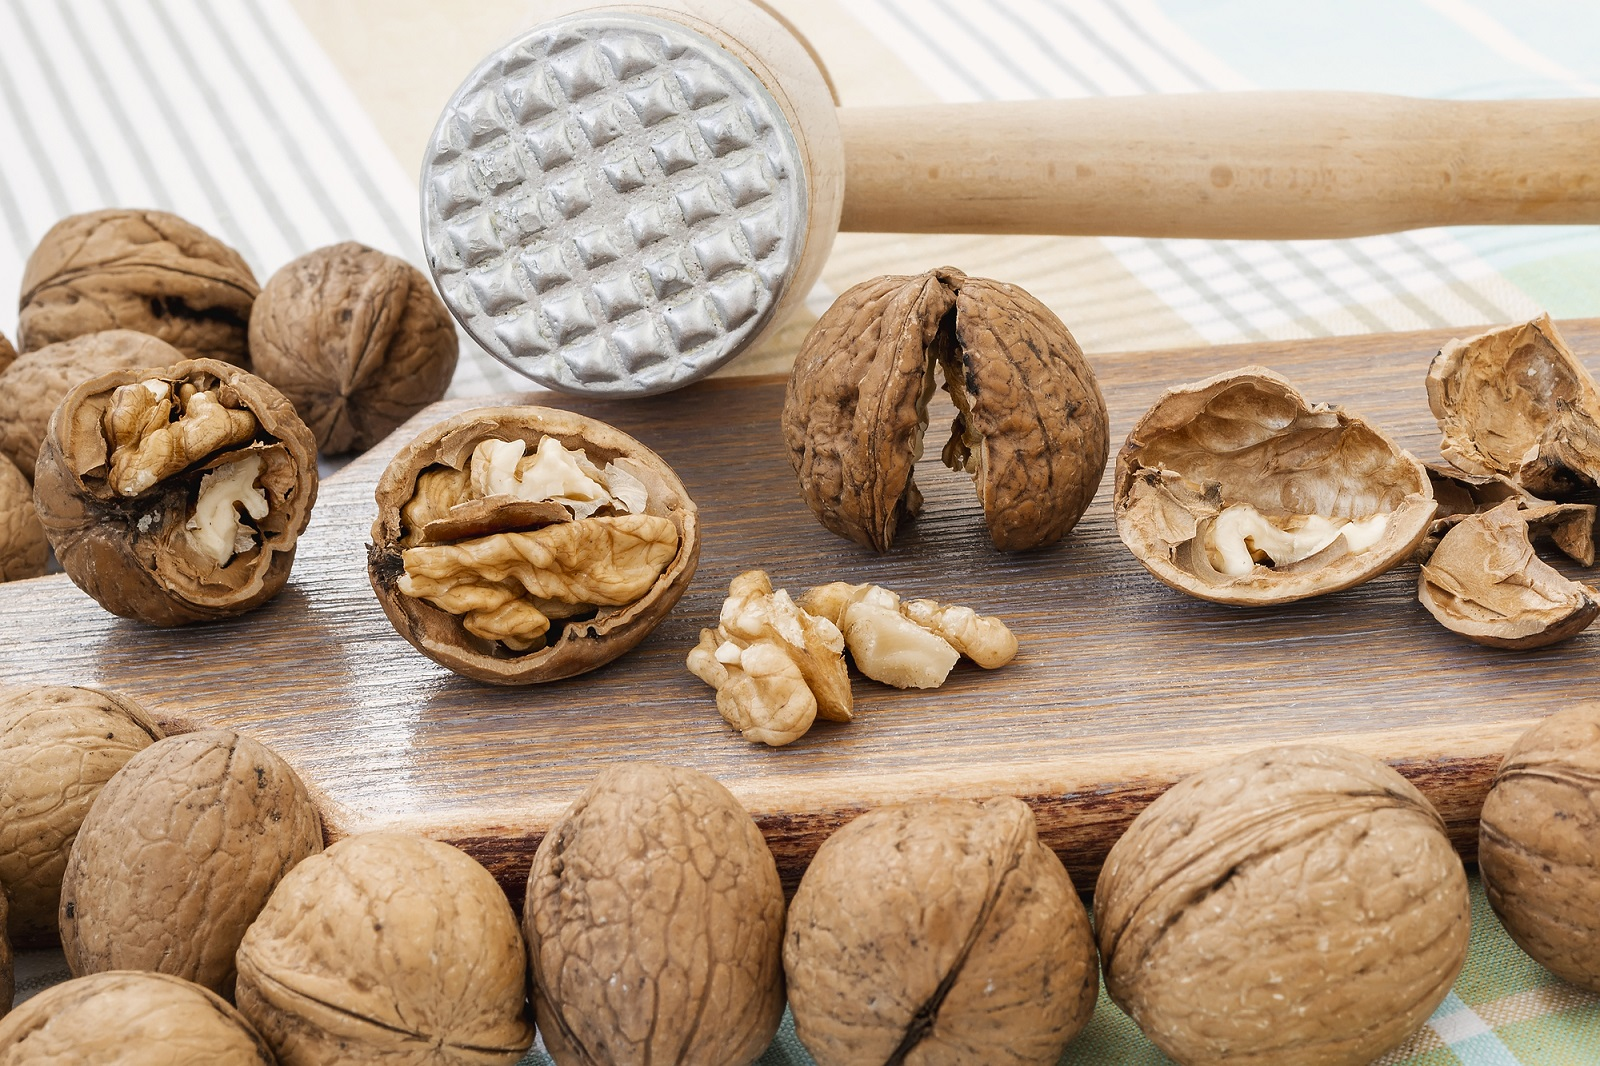 Front view of whole and cracked walnuts (Juglans regia) near wooden meat mallet on a brown wooden board. Natural unbleached nuts. Vegetarian food.